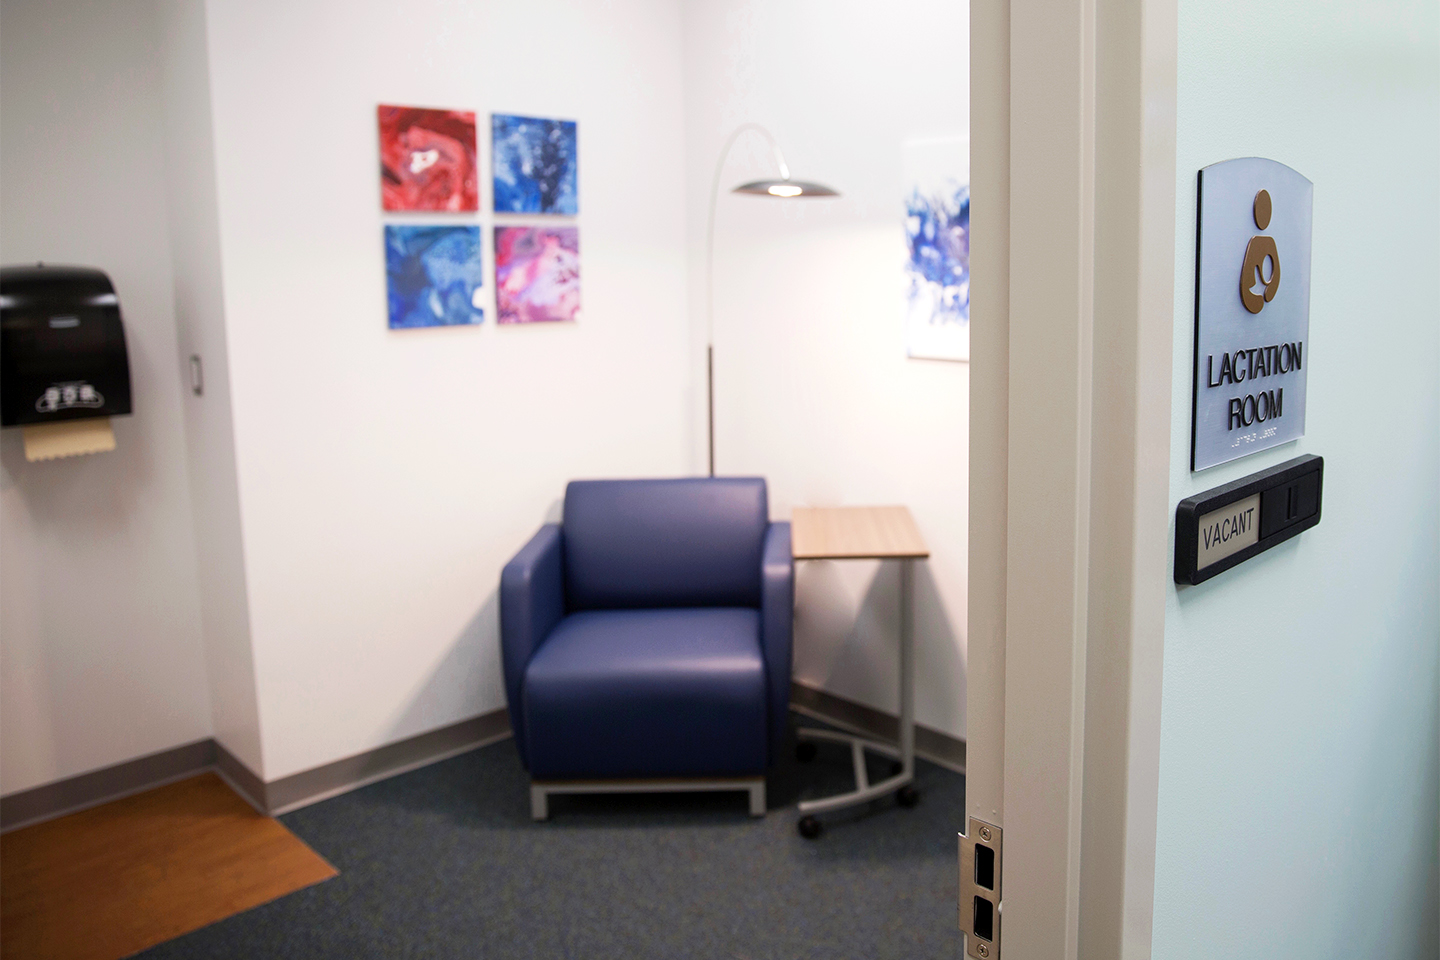 Lactation rooms available for parents in need at Oakland University